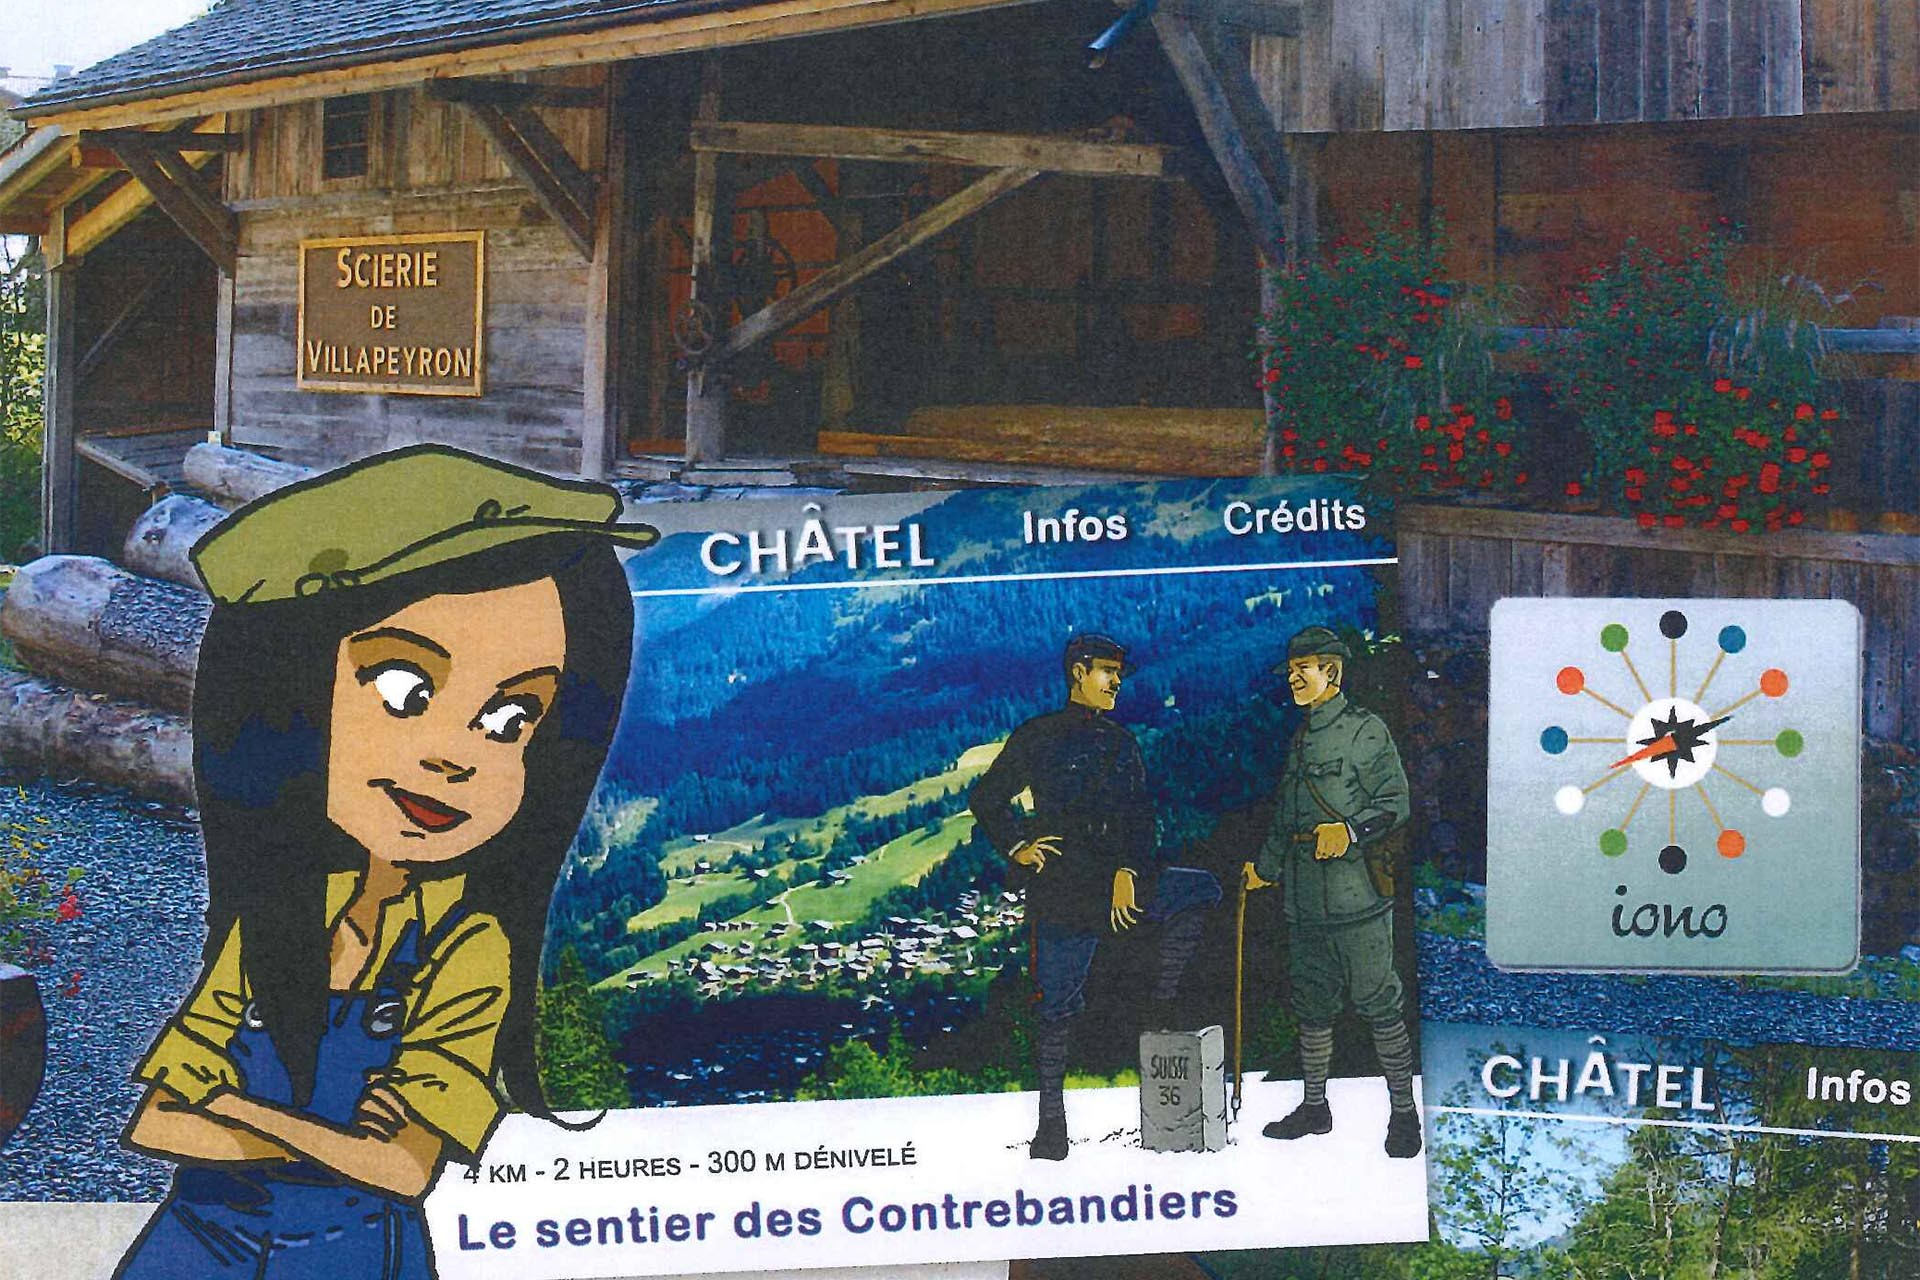 Discover Châtel with Chloé